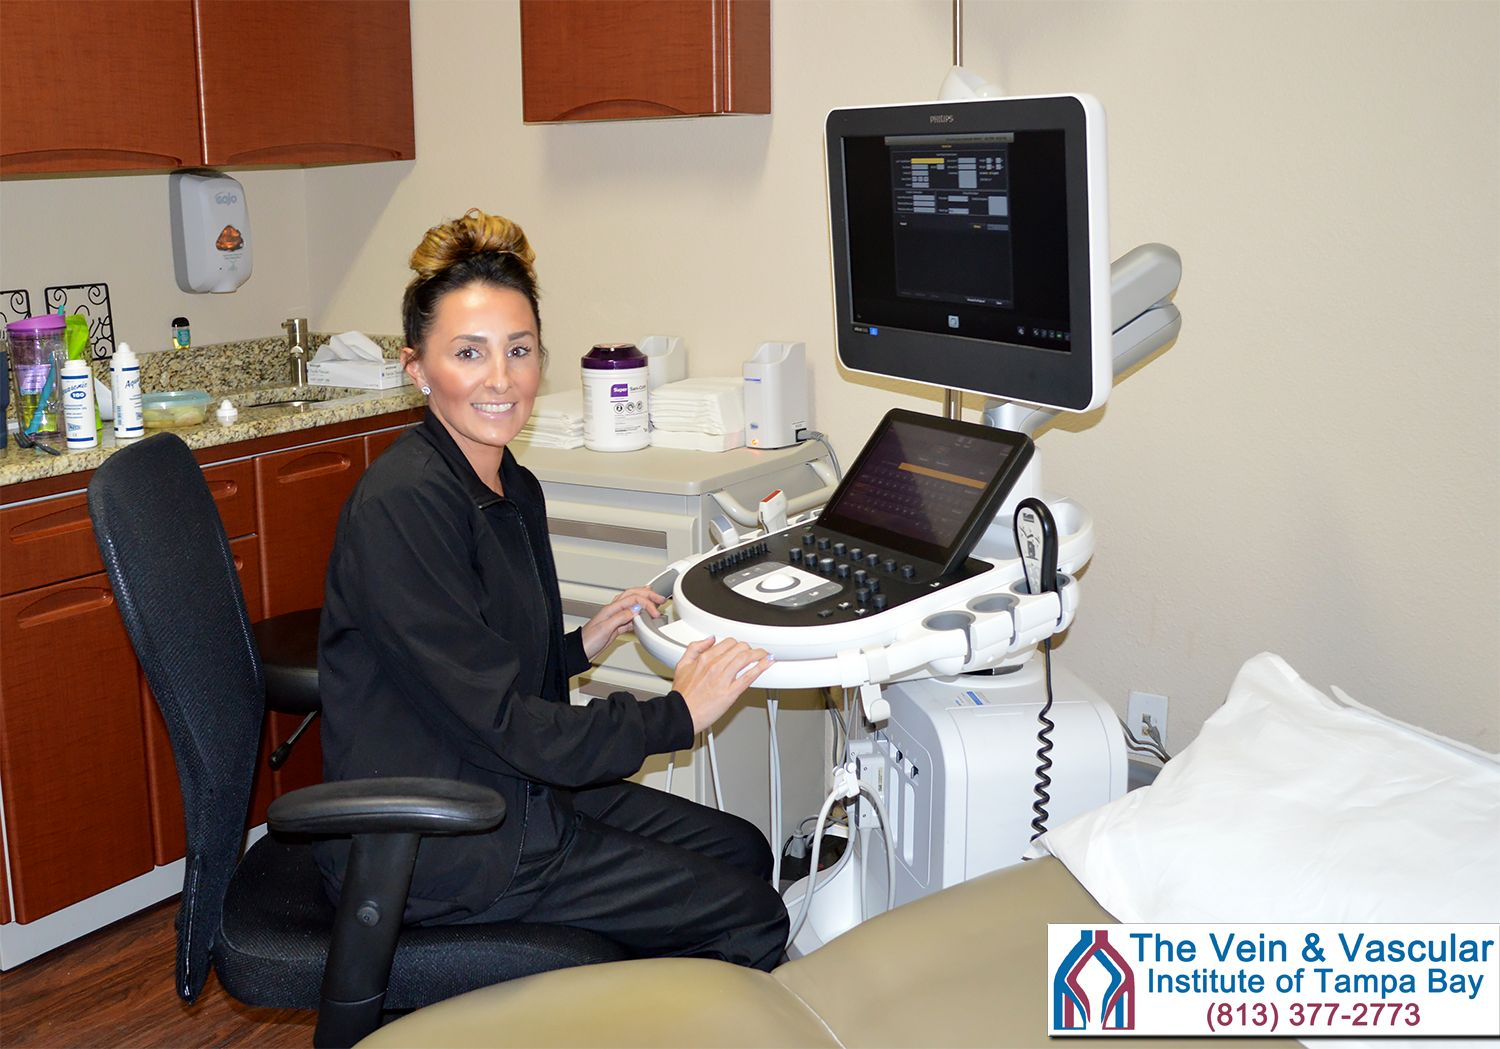 Vein And Vascular Institute Of Tampa Bay